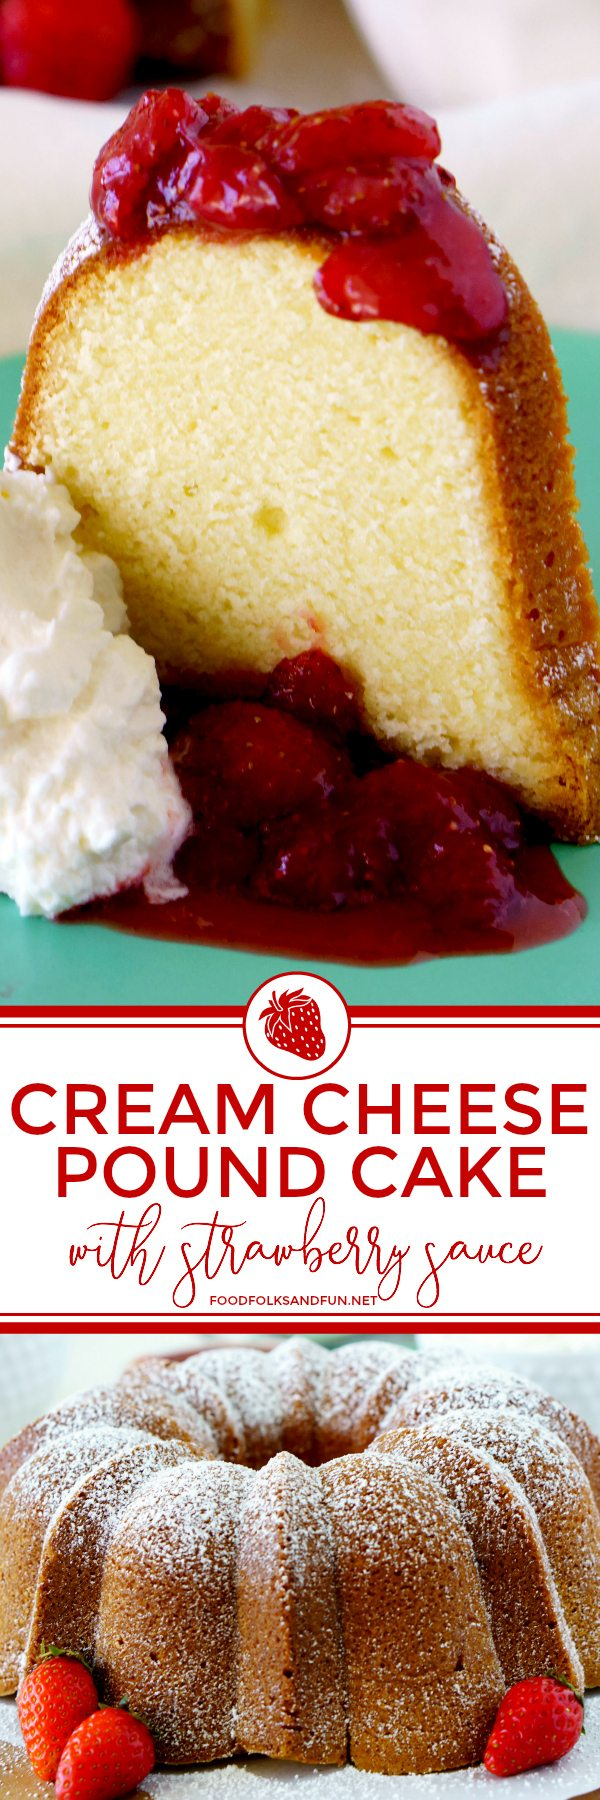 Cream Cheese Pound Cake with text overlay for Pinterest